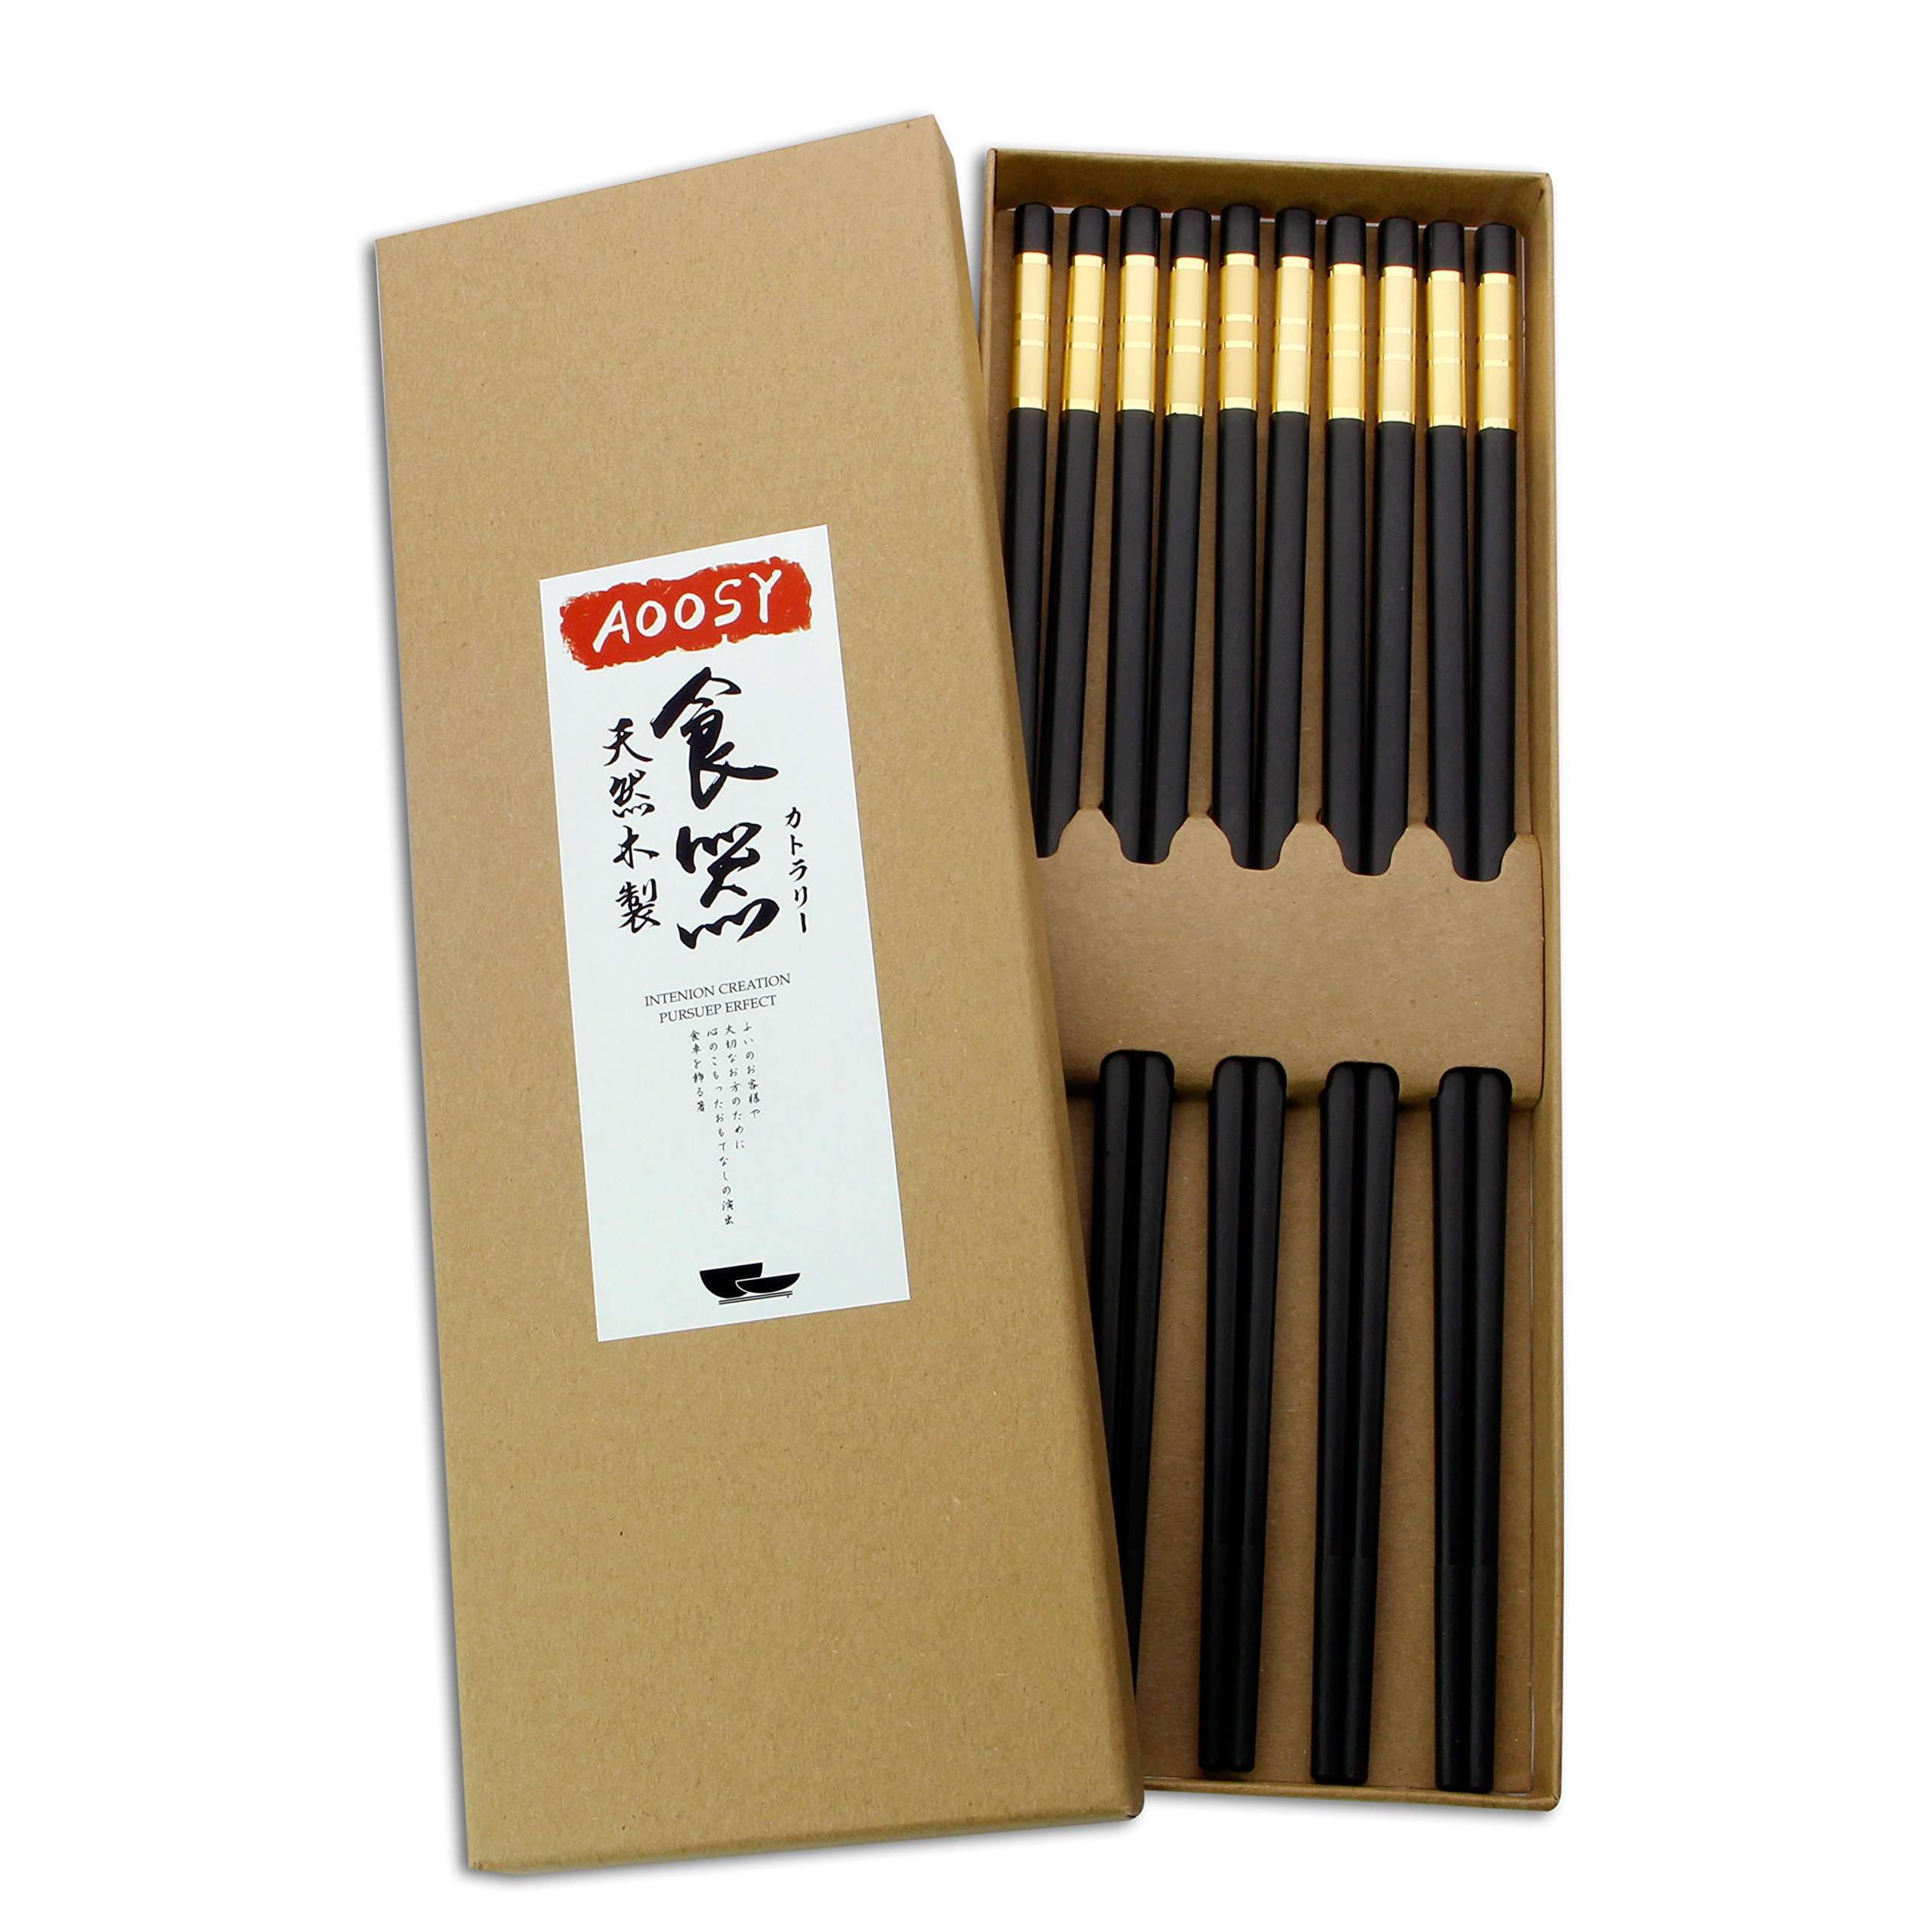 Chopsticks Sets, AOOSY 5 Pairs 10.83 inches Alloy Stainless Steel Asia Style Dishwasher safe Chopsticks for Cooking Sushi Noodles Rice Home Hotel Upscale Restaurant